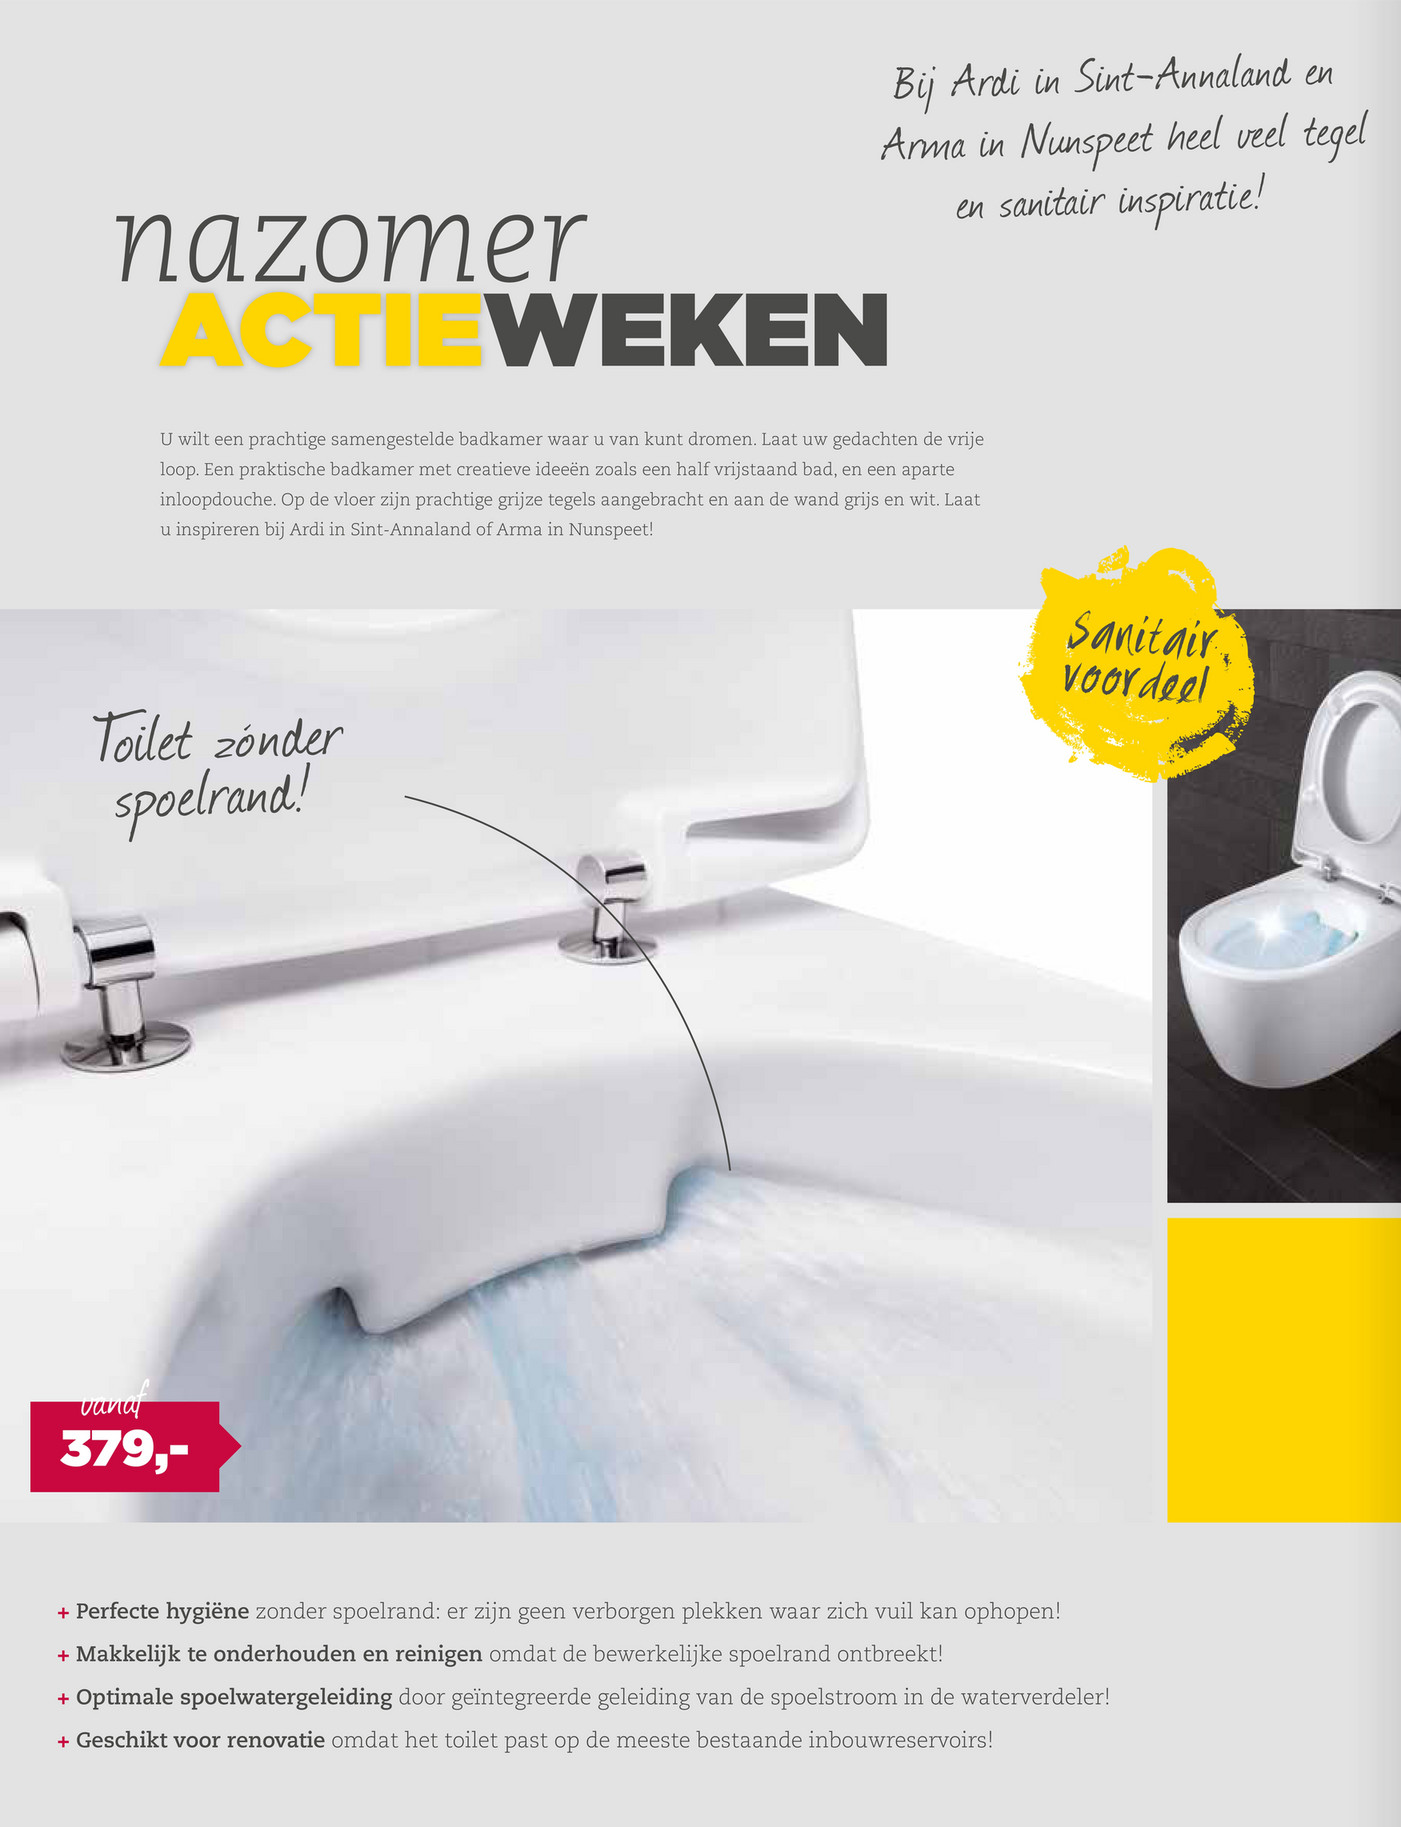 dbkeukens september actiefolder pagina 12 13